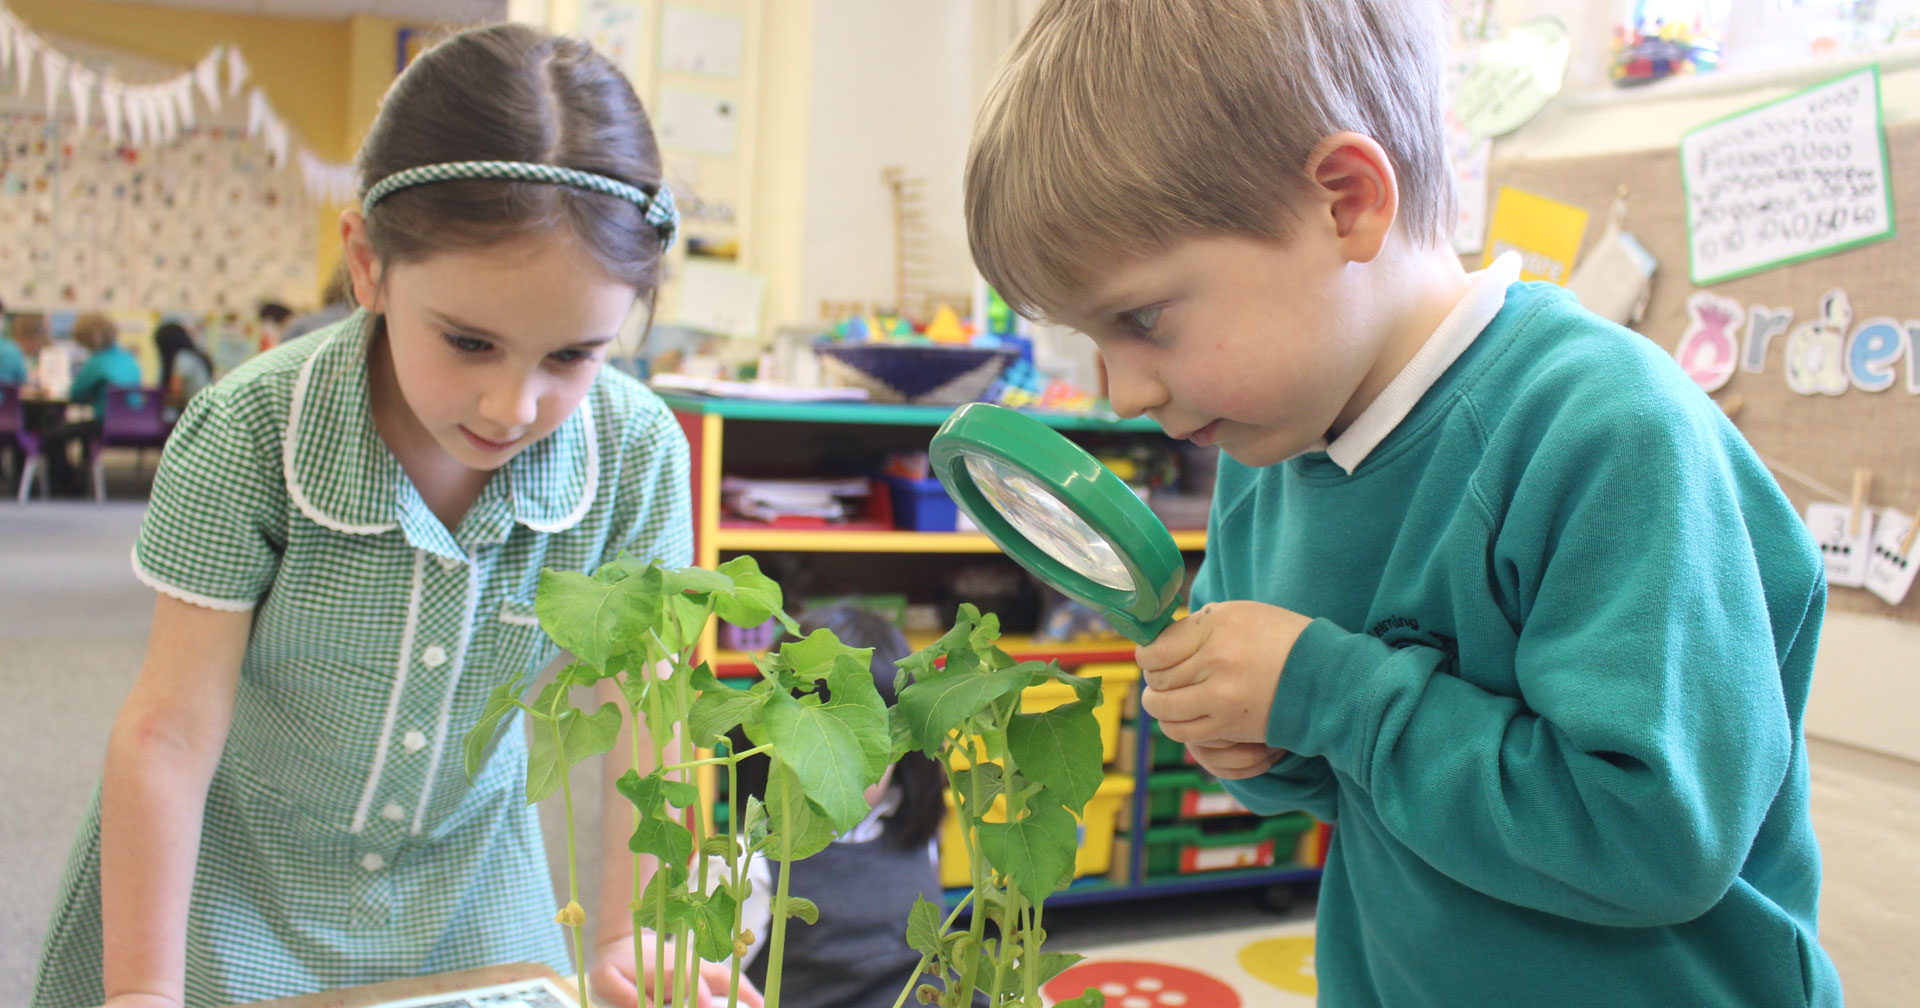 A school where pupils are motivated to learn to attain high standards...